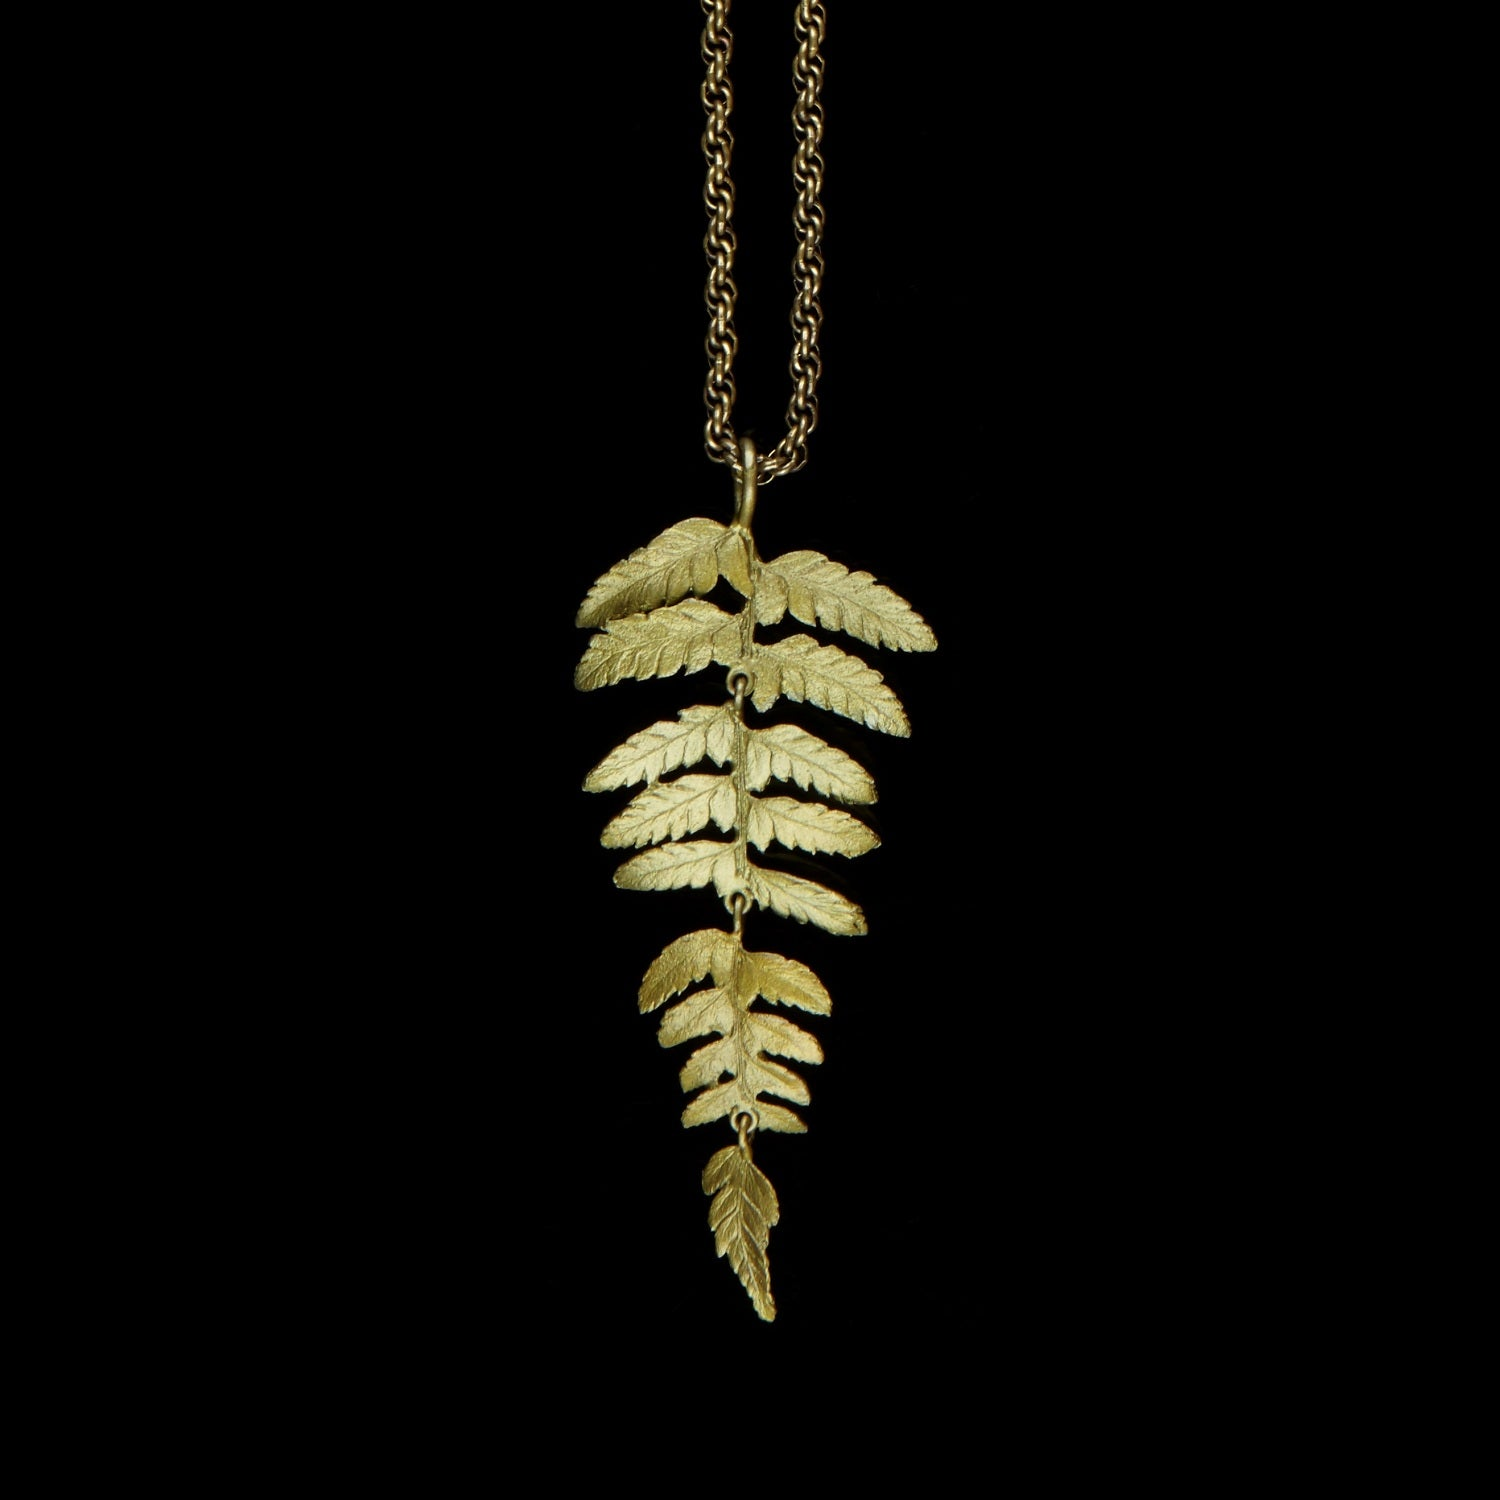 Fern Necklace - 30